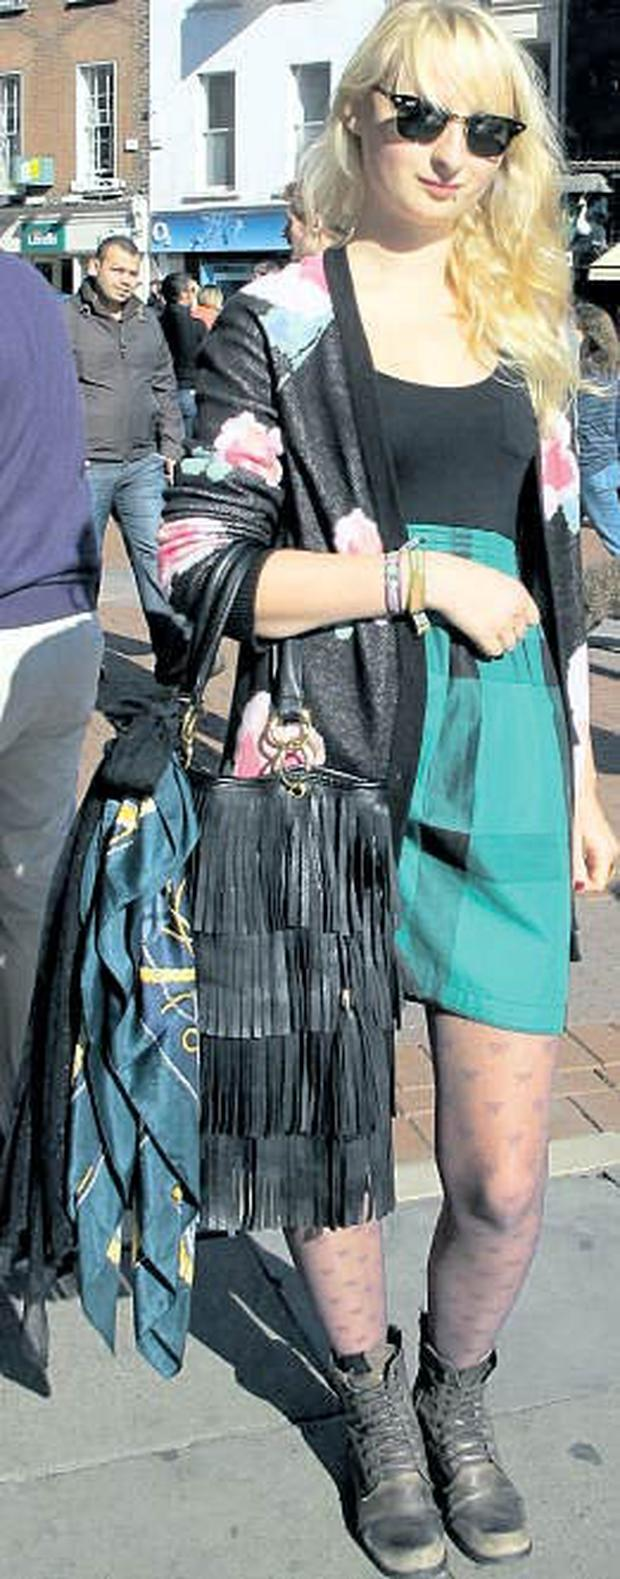 Magda Pietrykowska, wearing: Cardigan, €40, and dress, €70, both from Topshop. Bag, €10, alwear. Scarf, €3, a charity shop in Amsterdam. Sunglasses, €150, www.ray-ban.com. Tights, €3, Penneys. Boots, €50, River Island.